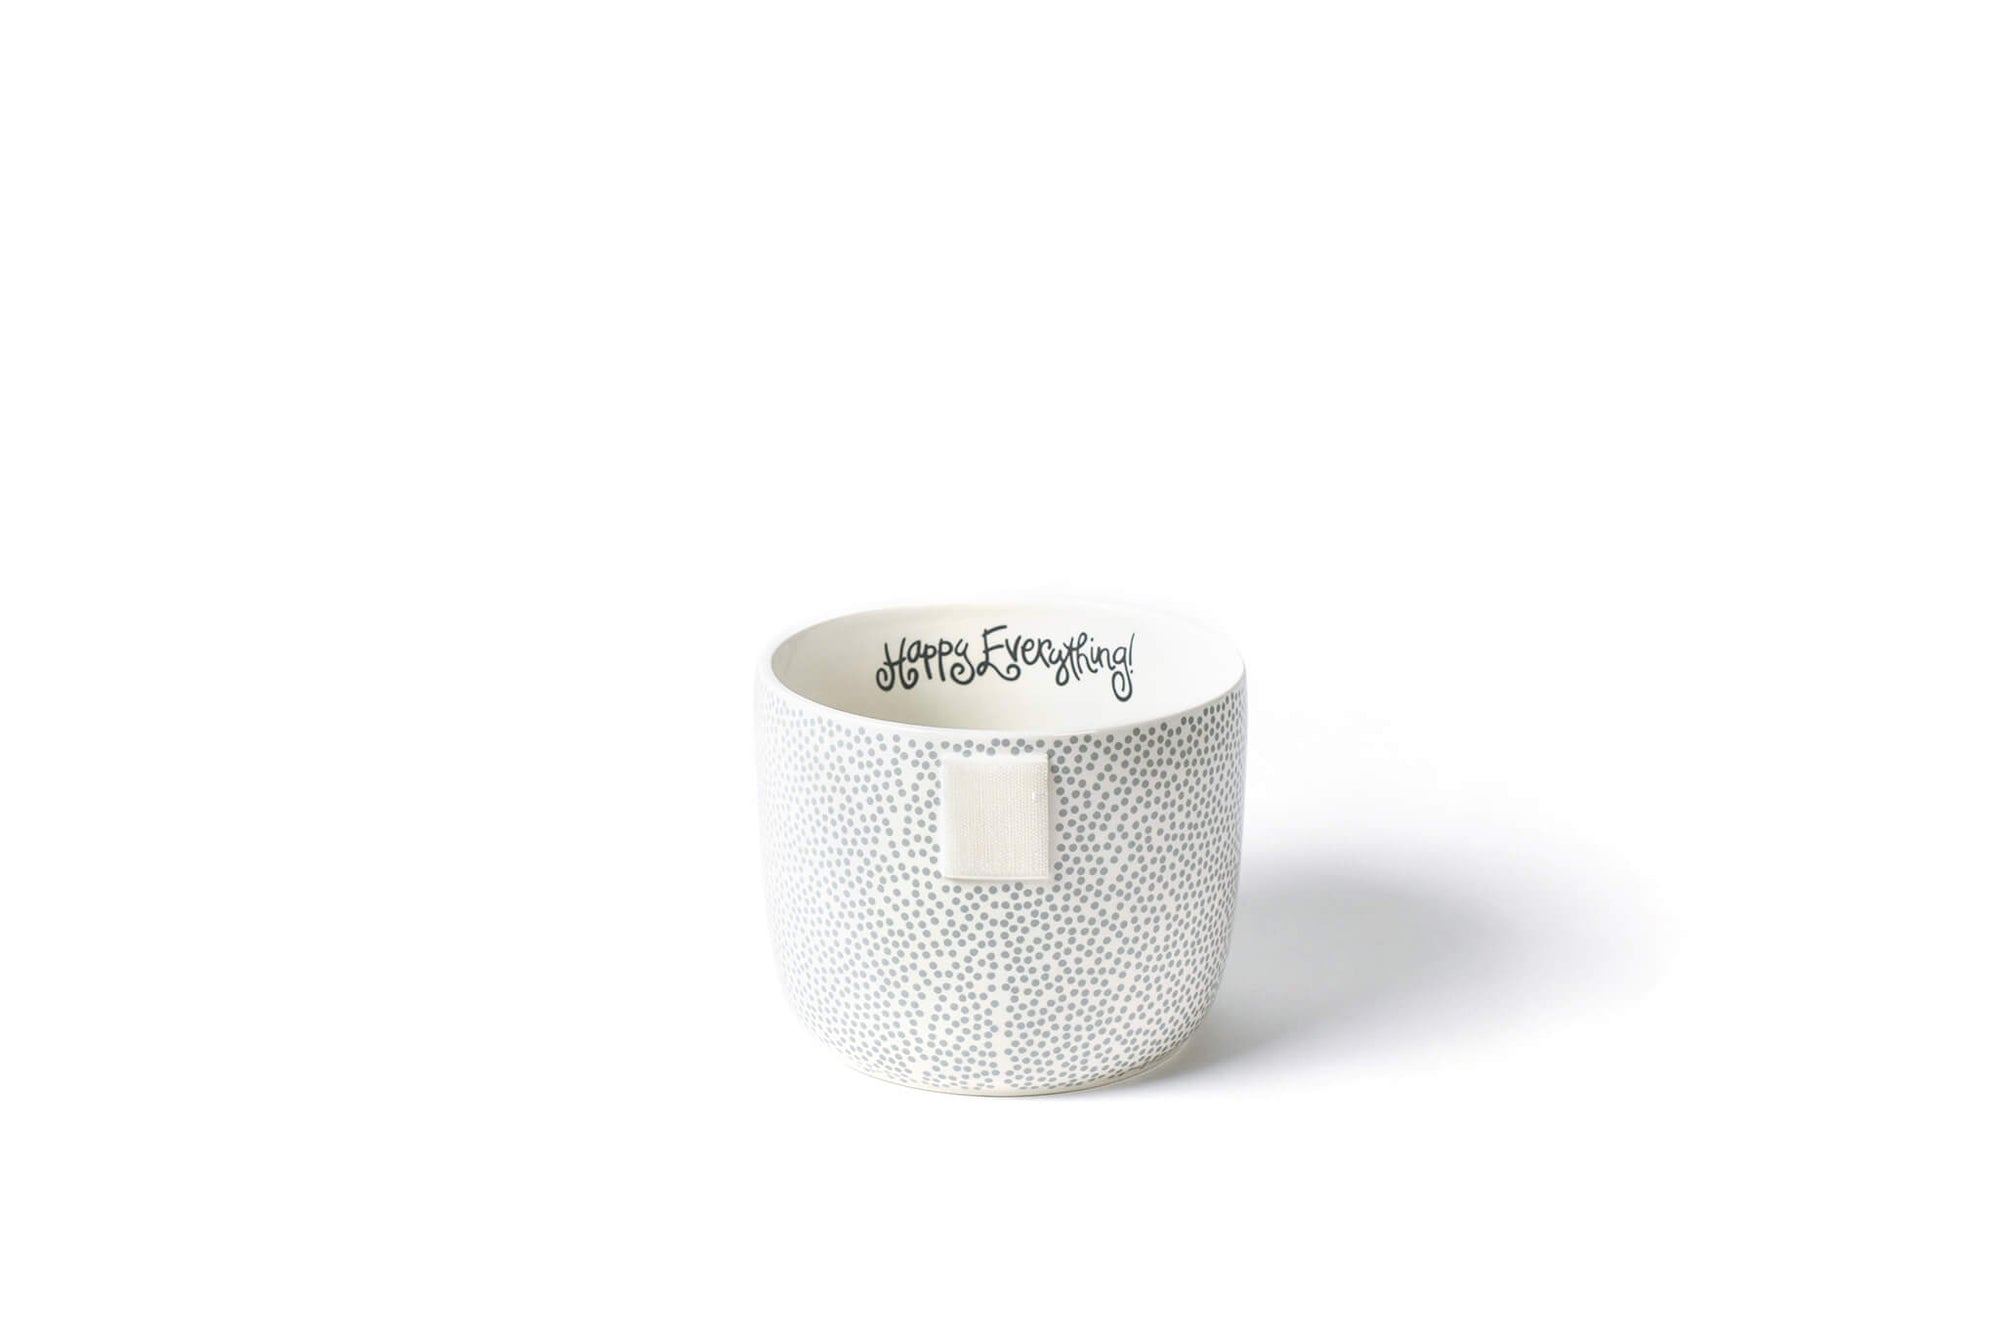 Stone Small Dot Mini Happy Everything! Bowl